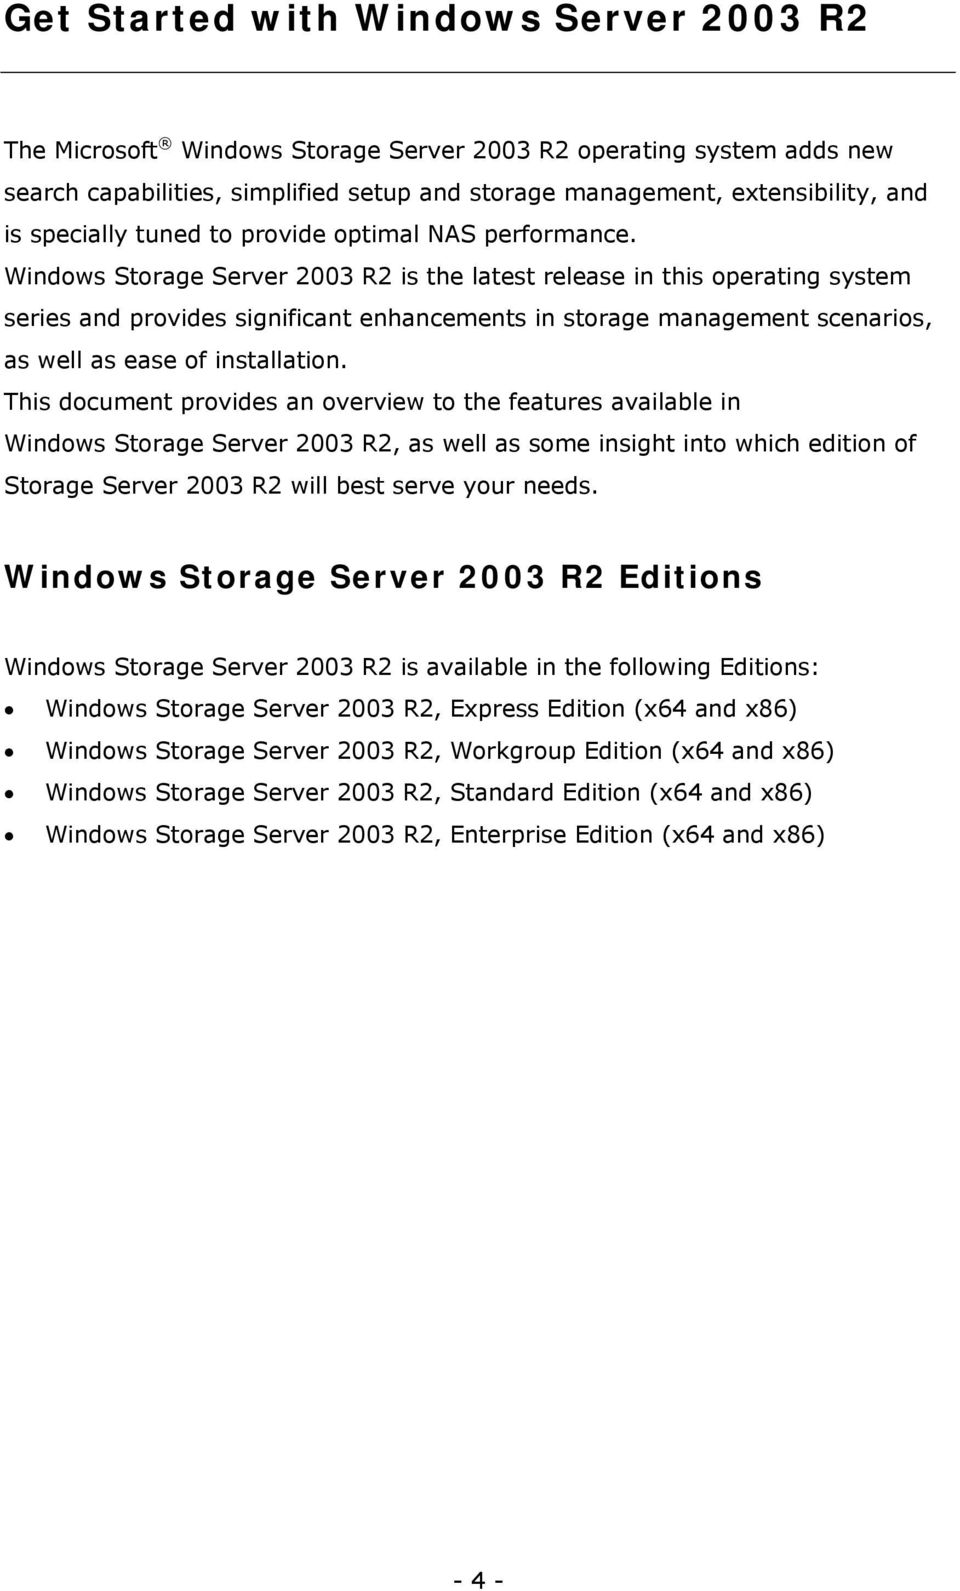 Windows Storage Server 2003 R2 is the latest release in this operating system series and provides significant enhancements in storage management scenarios, as well as ease of installation.